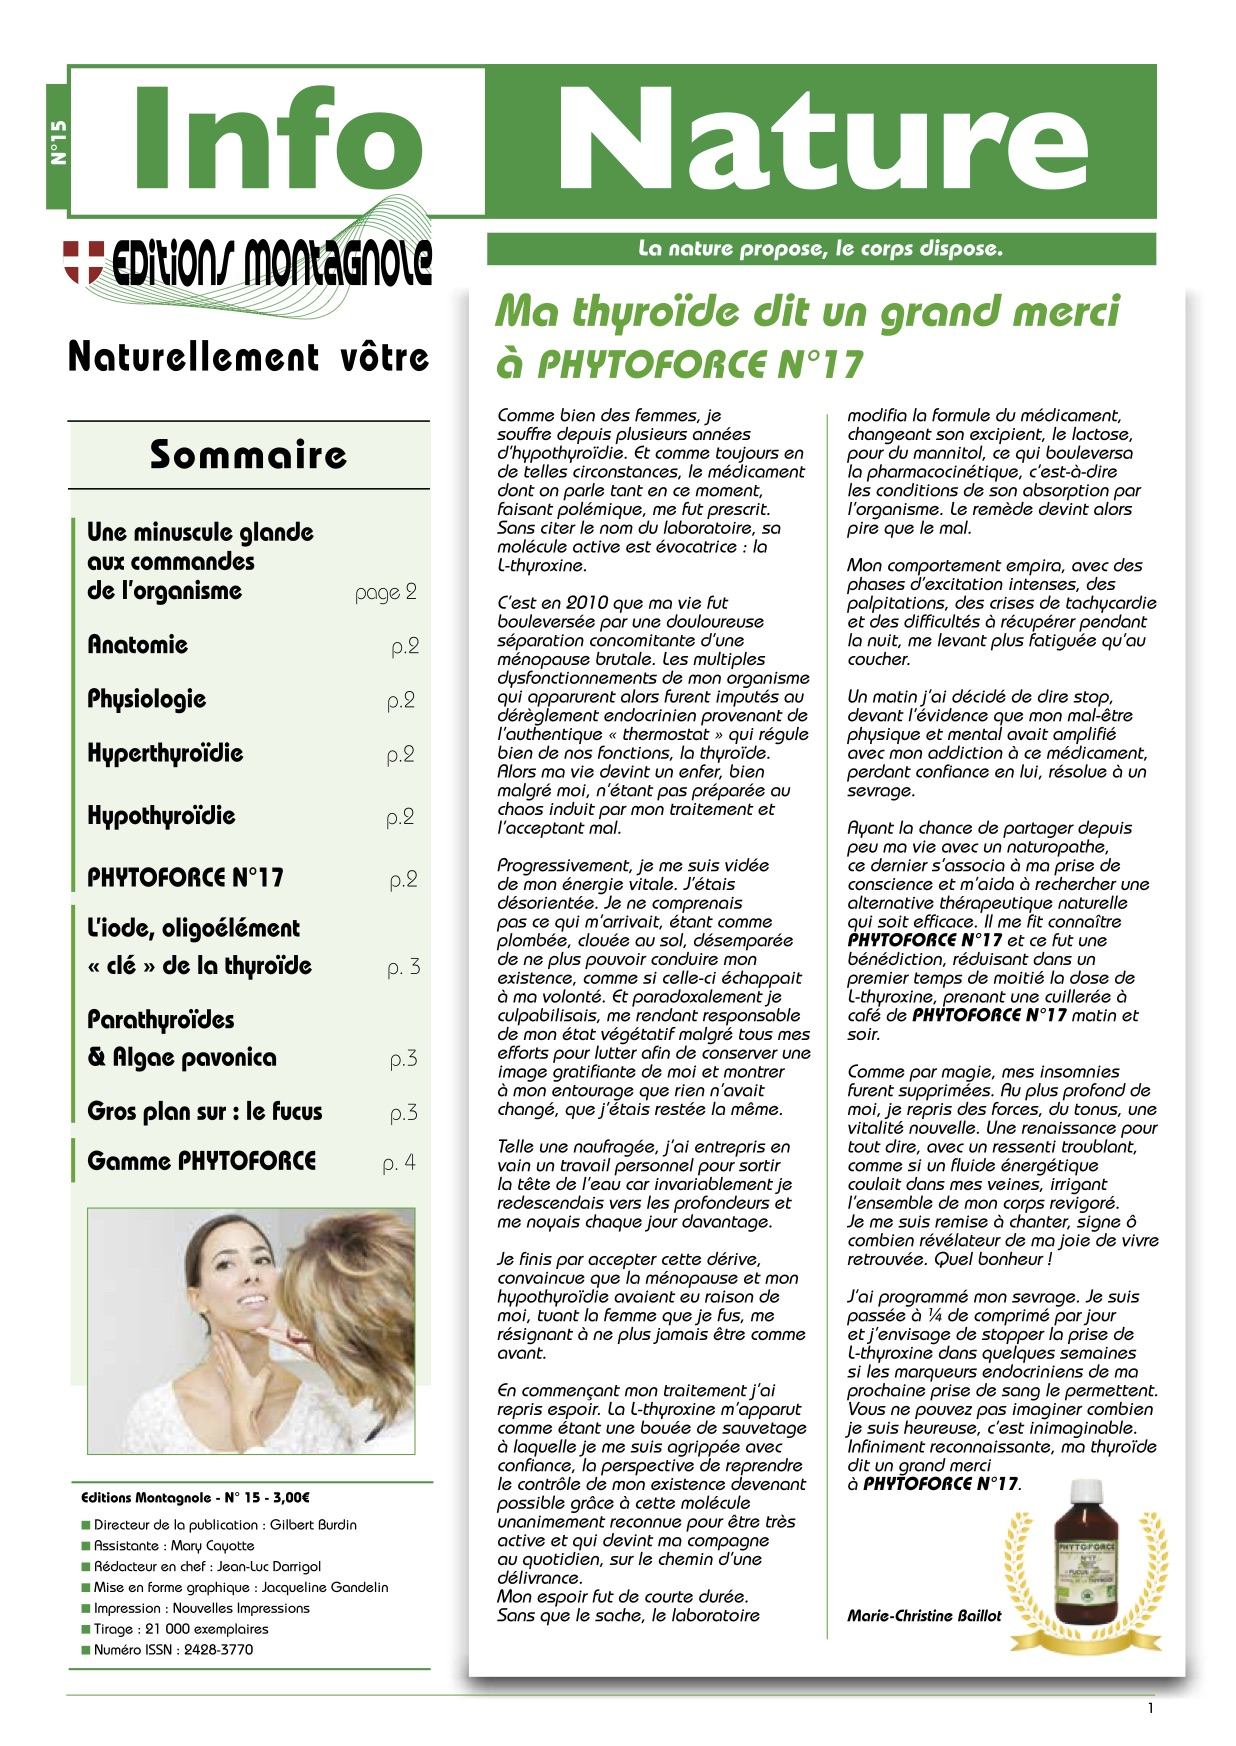 Phytoforce n° 17